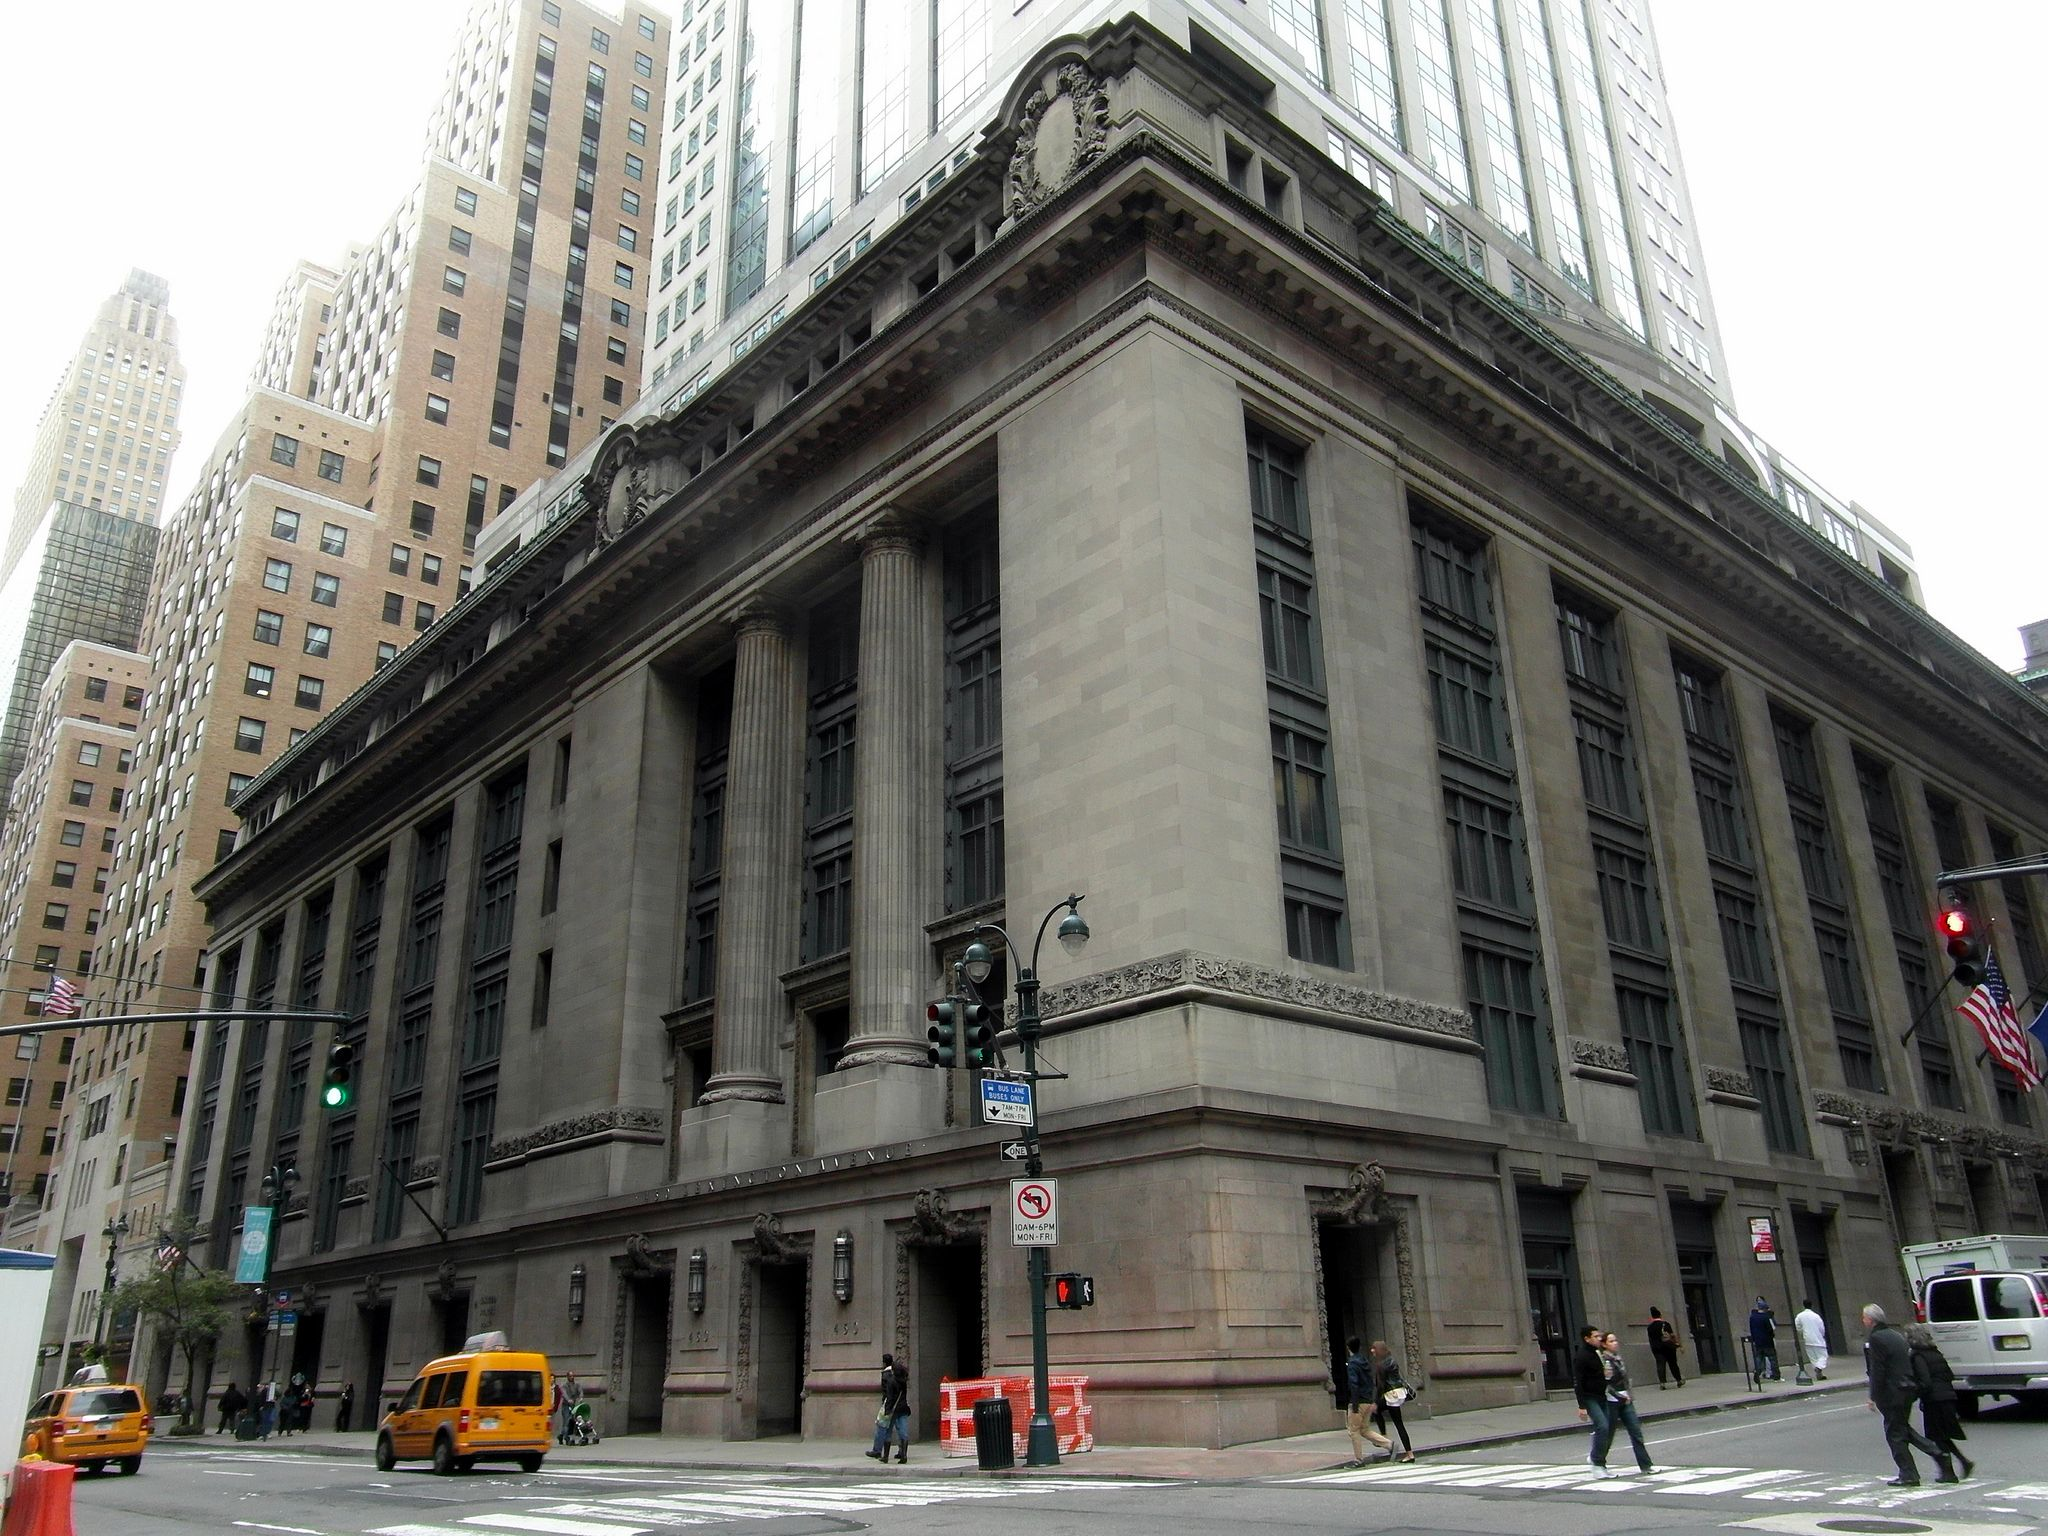 Grand Central Post Office Lexington Avenue Post Office Street View